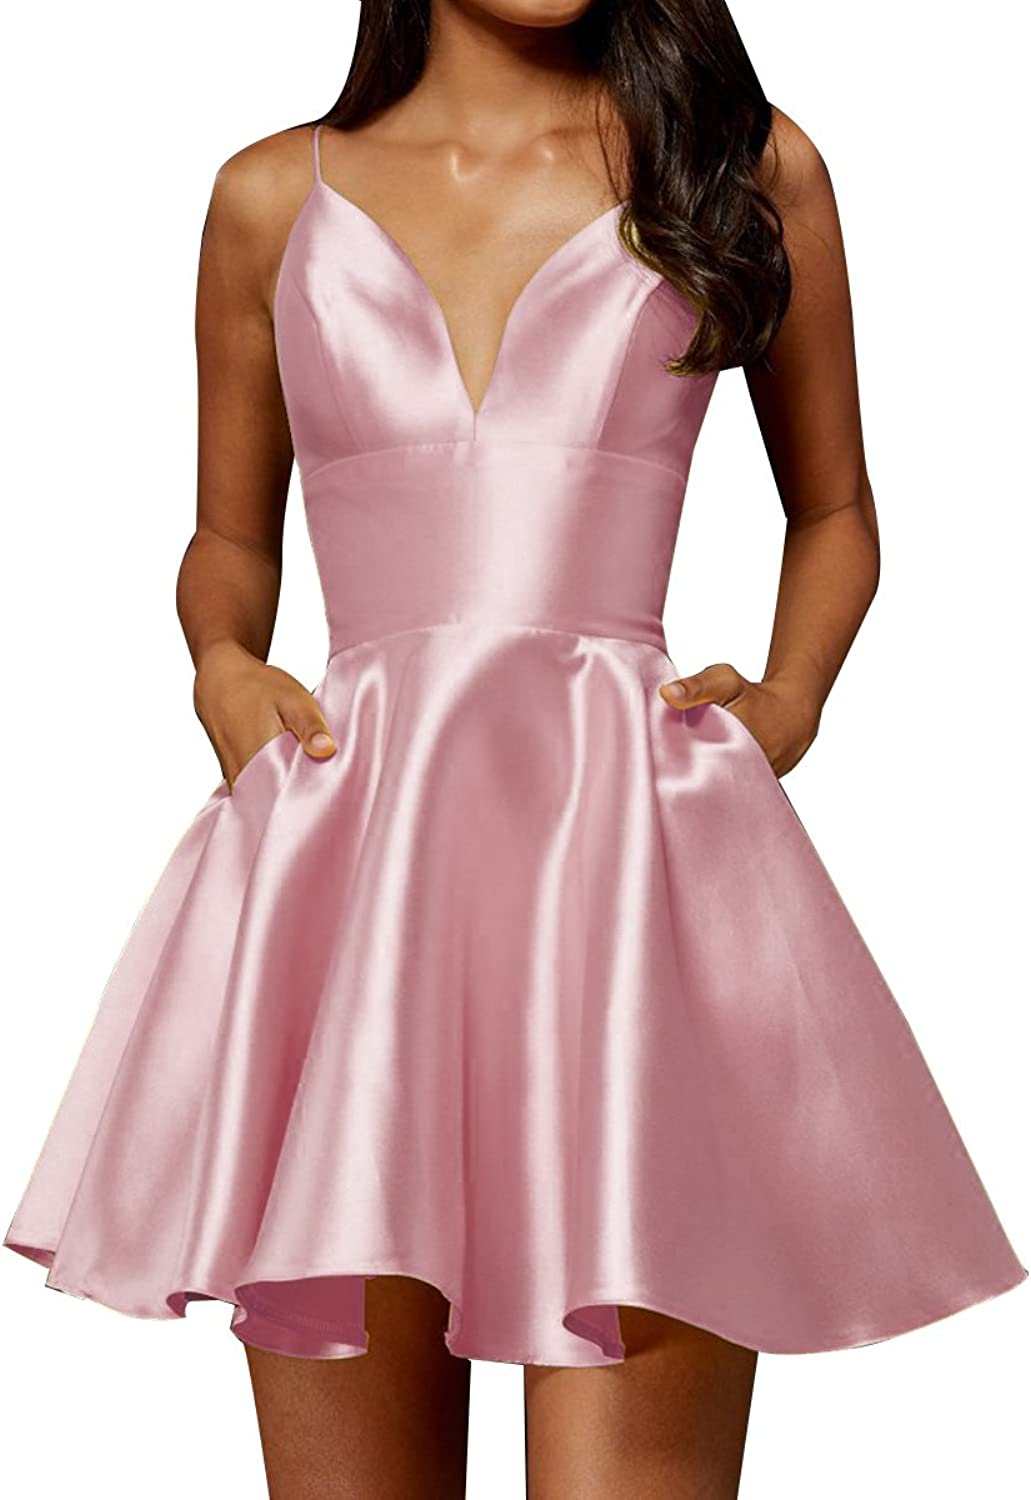 Short Homecoming Dresses with Pockets Spaghetti Straps ALine Cocktail Gown 2018